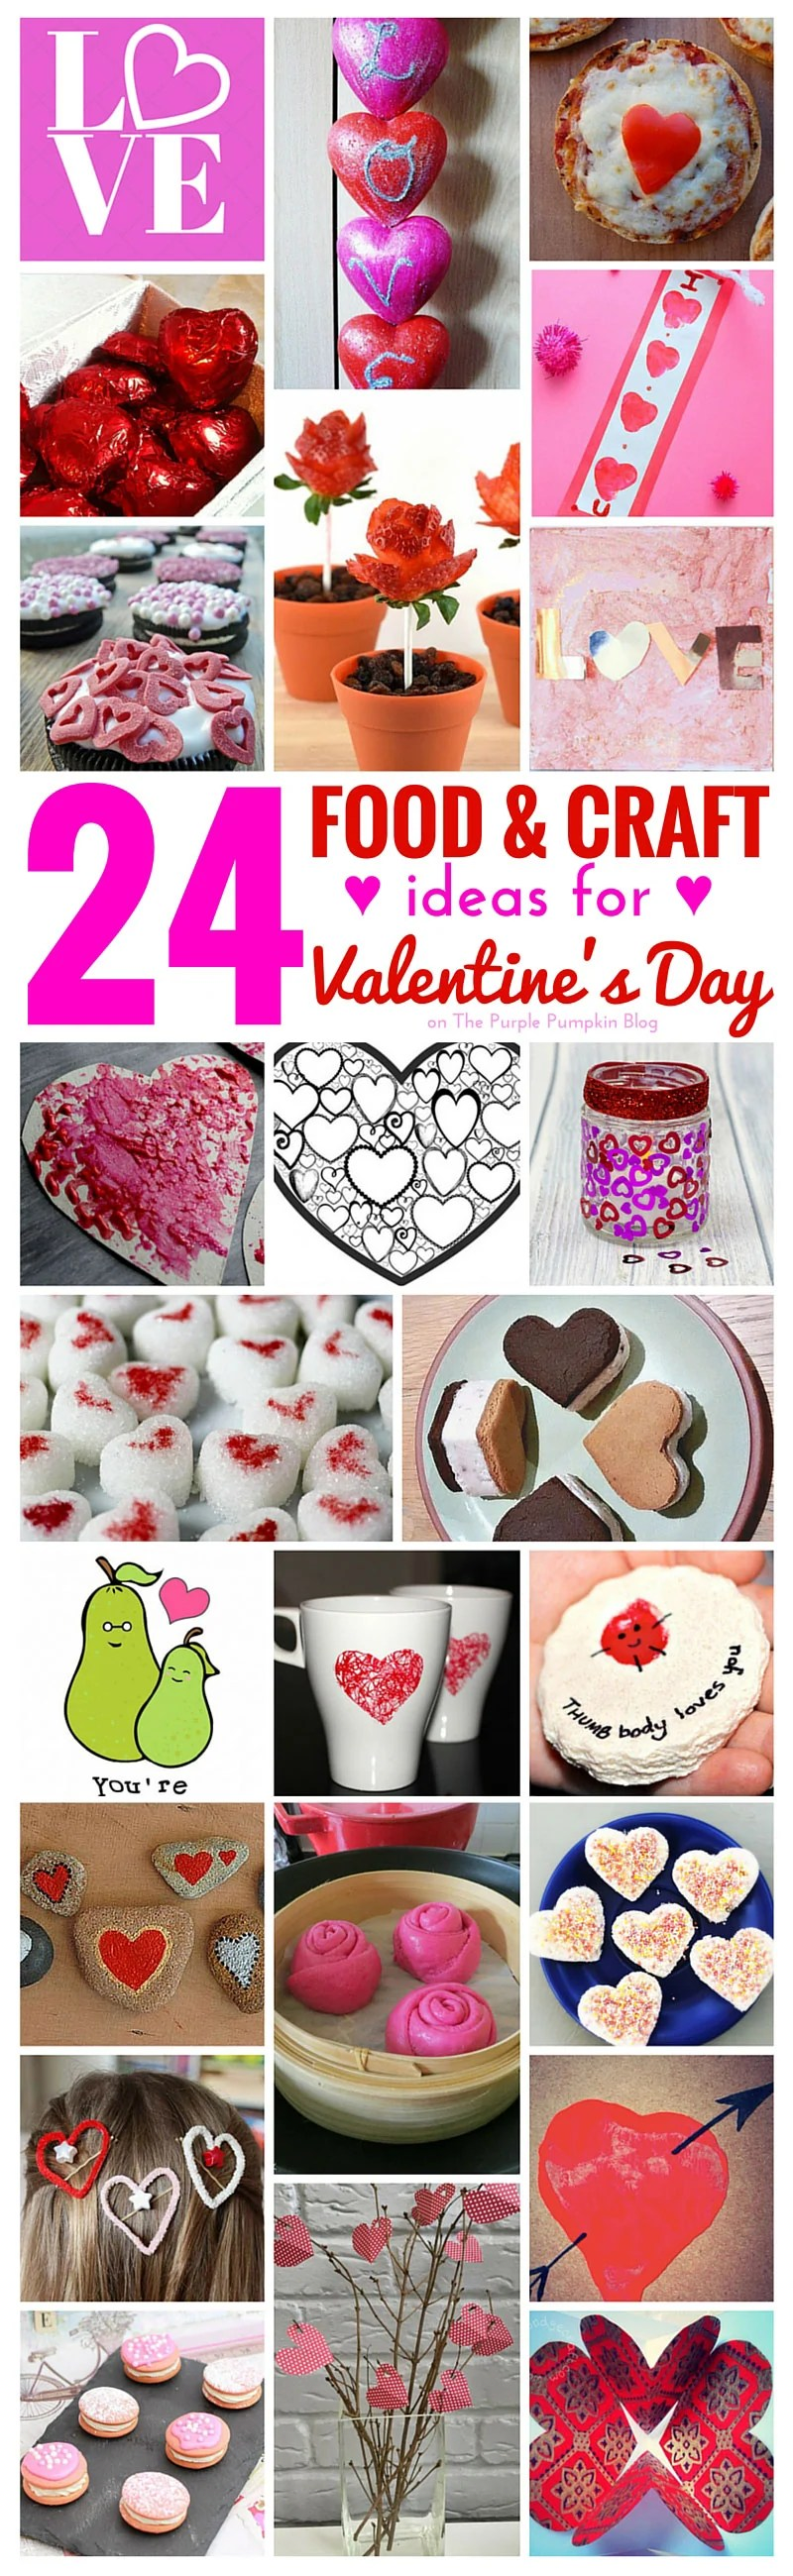 valentine party craft ideas 24 food amp craft ideas for s day 5658